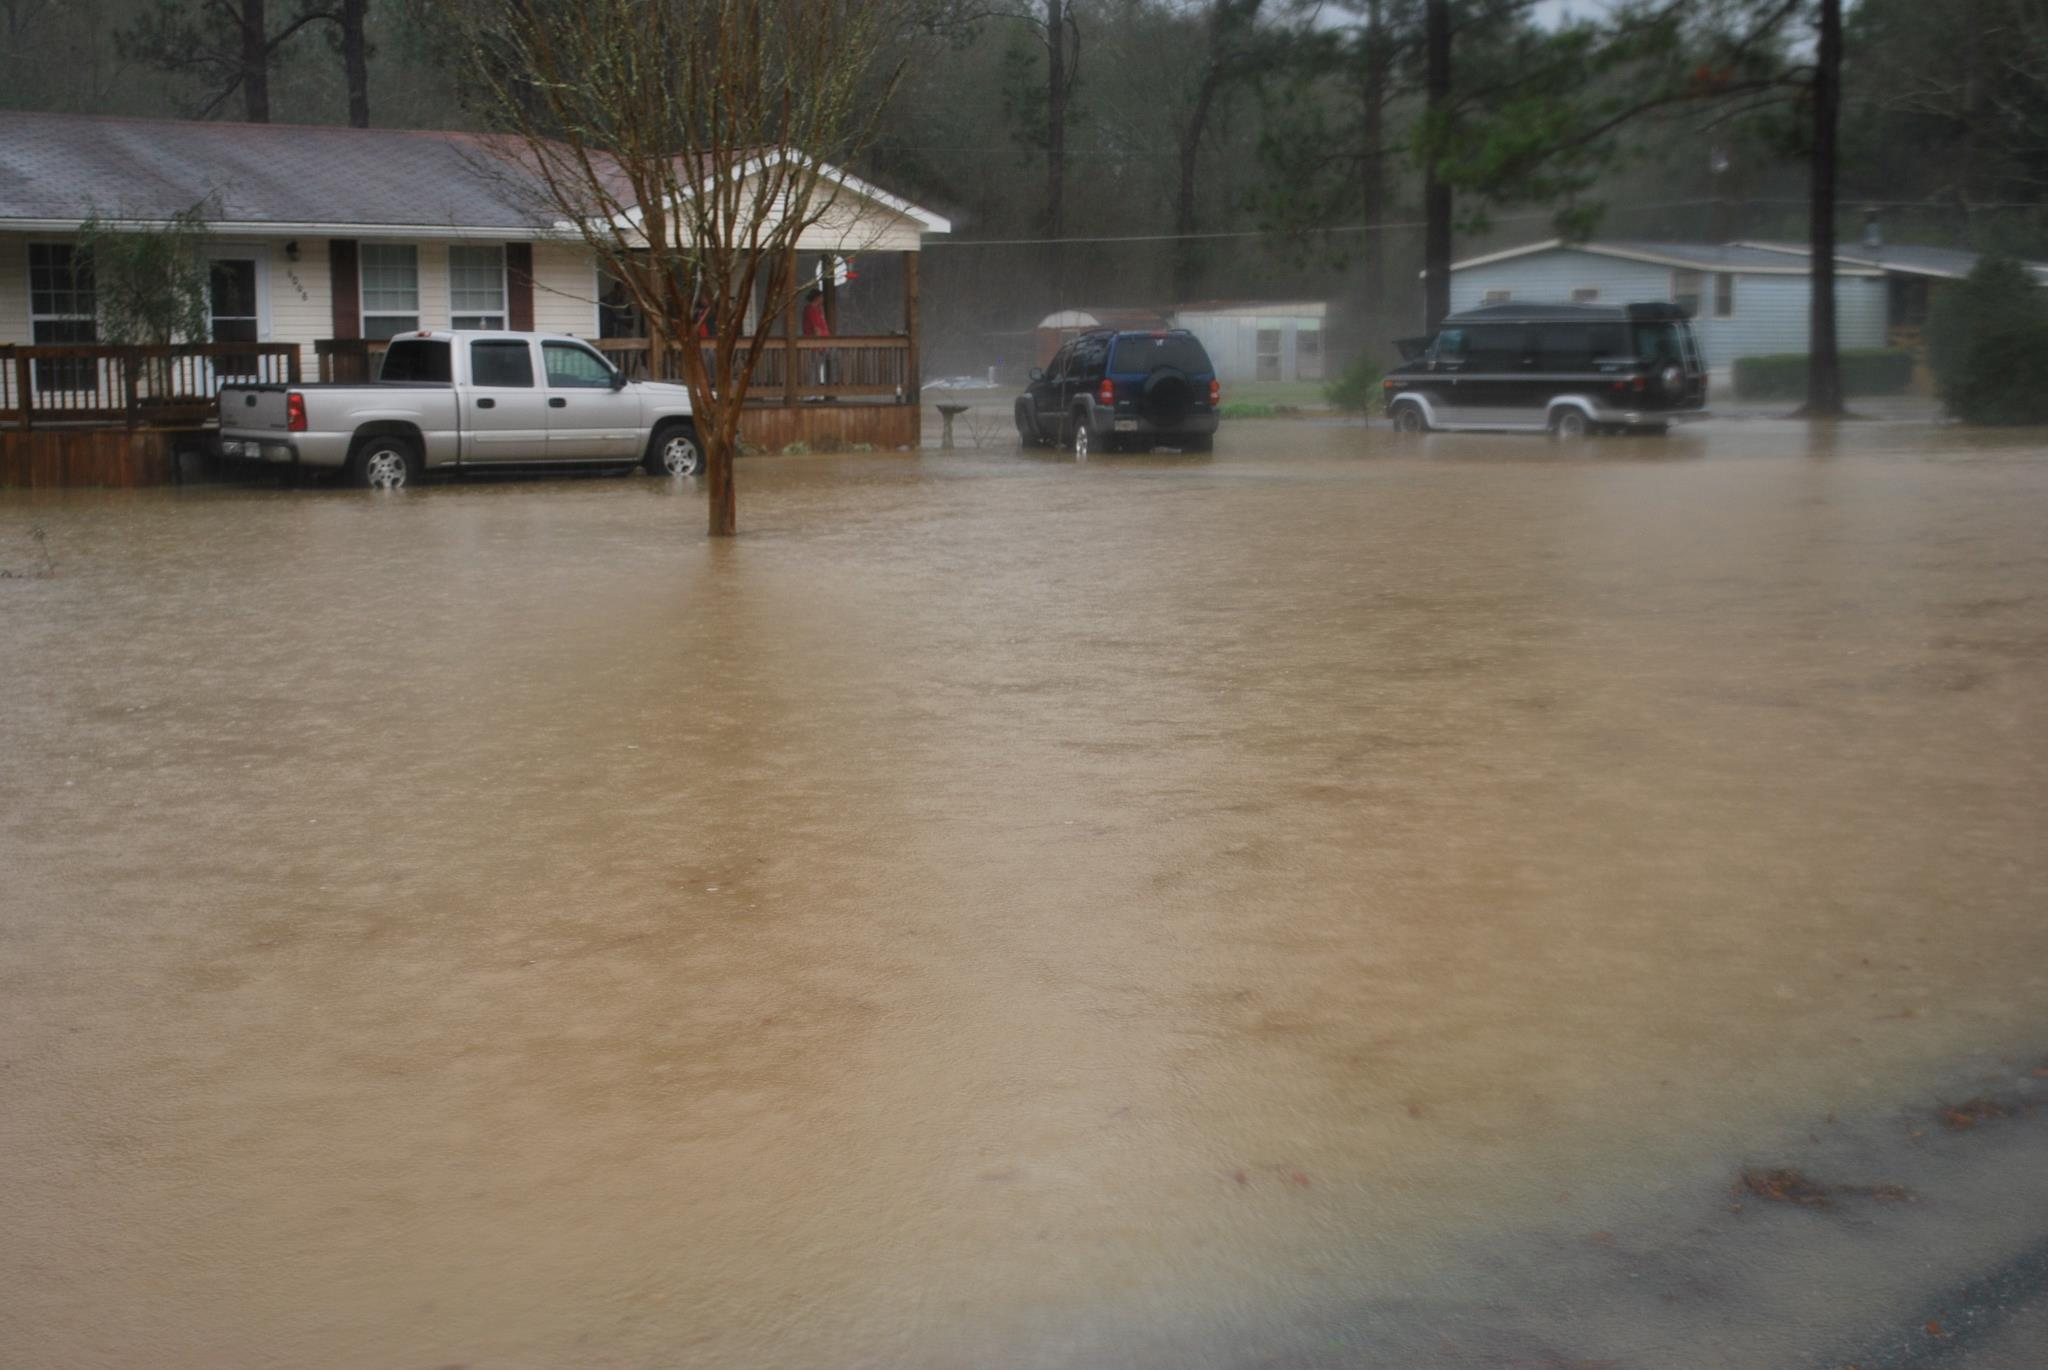 Flooding of a neighborhood in Worth County, GA on February 23, 2013. Photo courtesy of Kellie Parton.